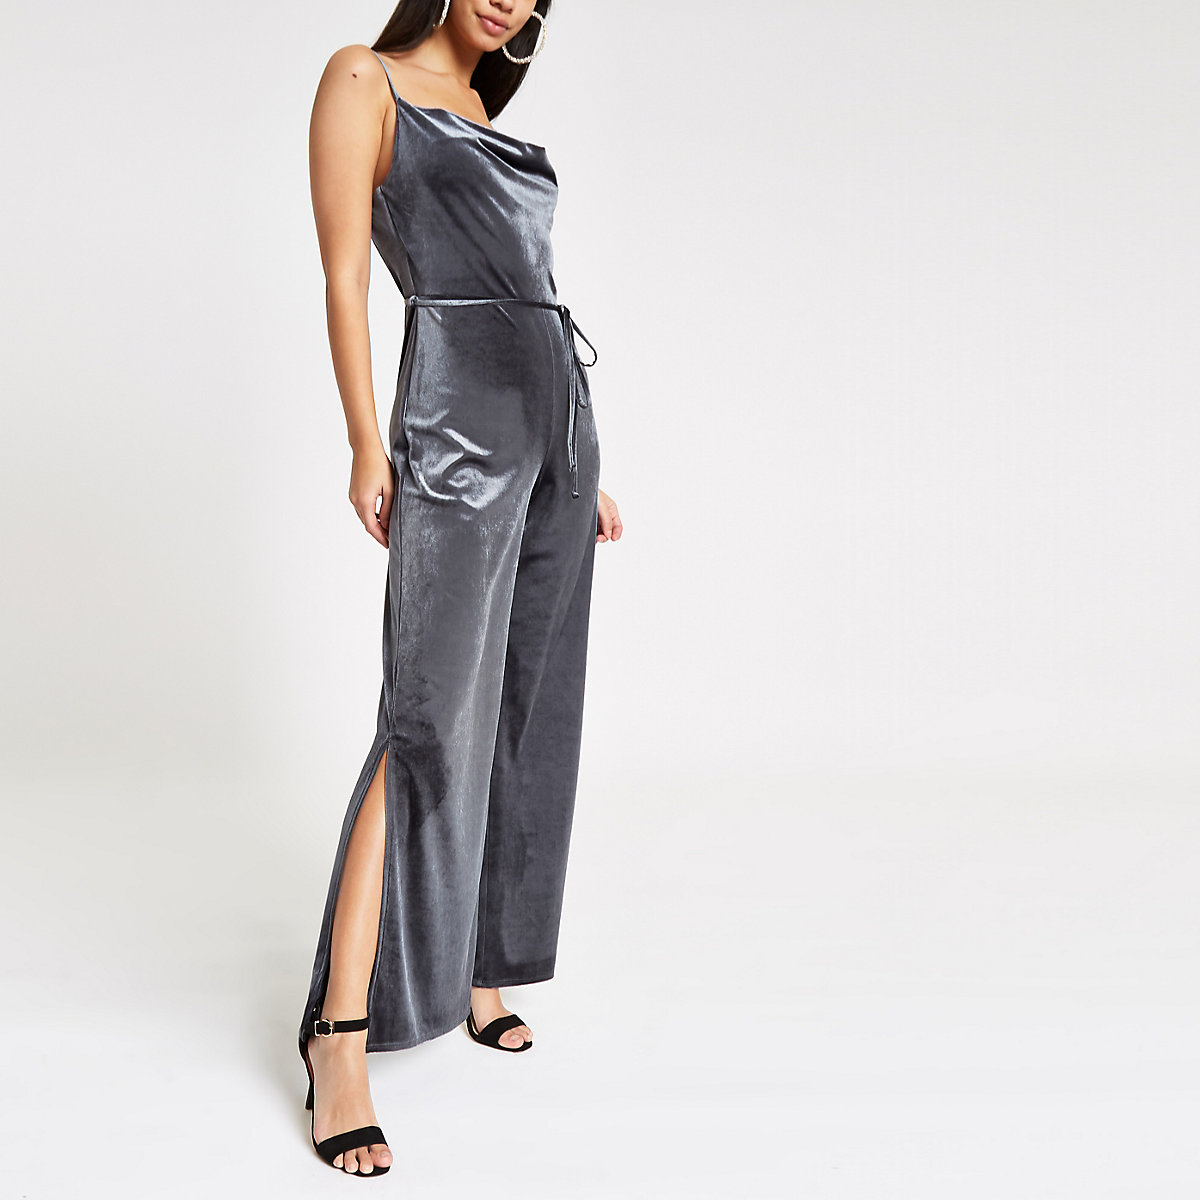 e719d847db0 Grey velvet cowl neck wide leg jumpsuit - Jumpsuits - Playsuits   Jumpsuits  - women